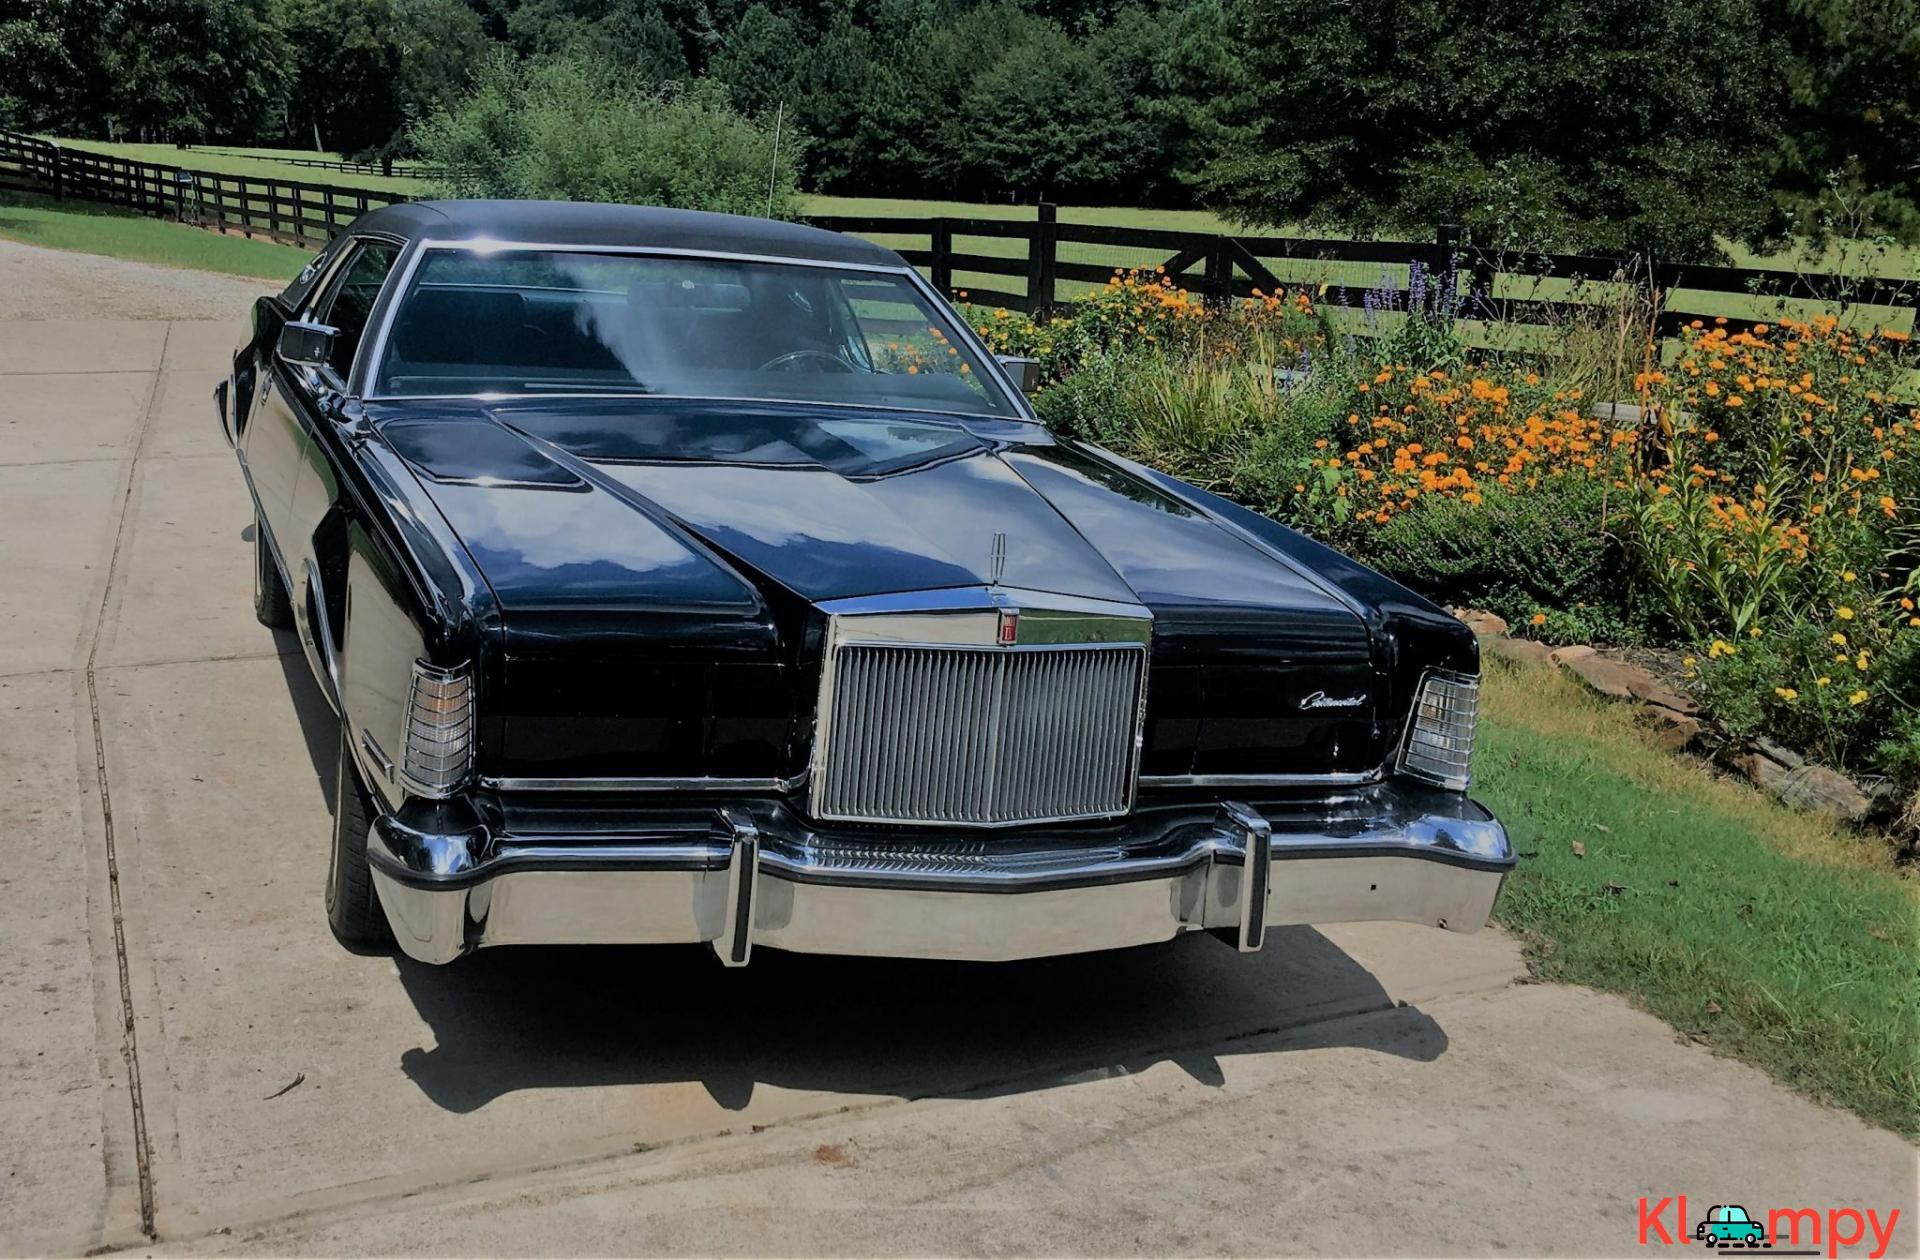 1974 Lincoln Continental Mark IV Coupe V8 - 5/20